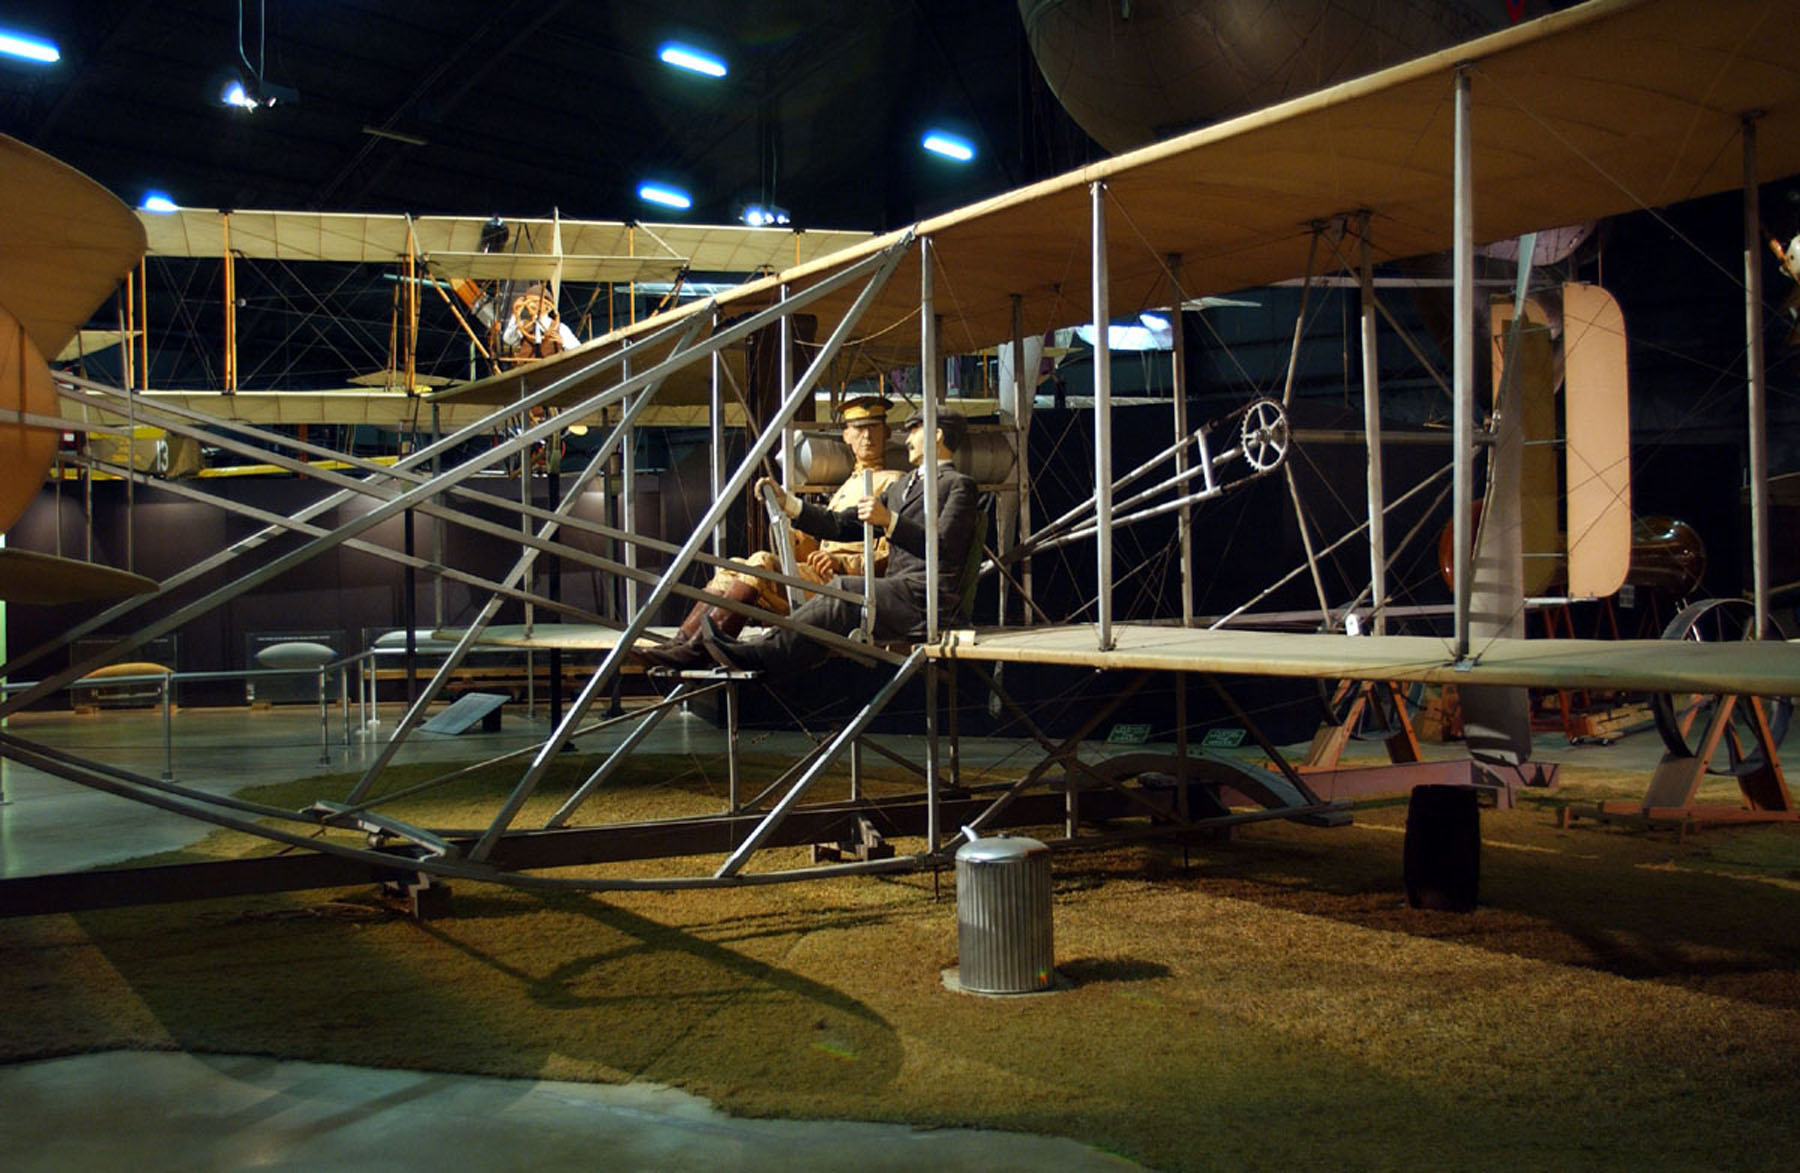 http://upload.wikimedia.org/wikipedia/commons/6/68/1909_Wright_Flyer_USAF.jpg